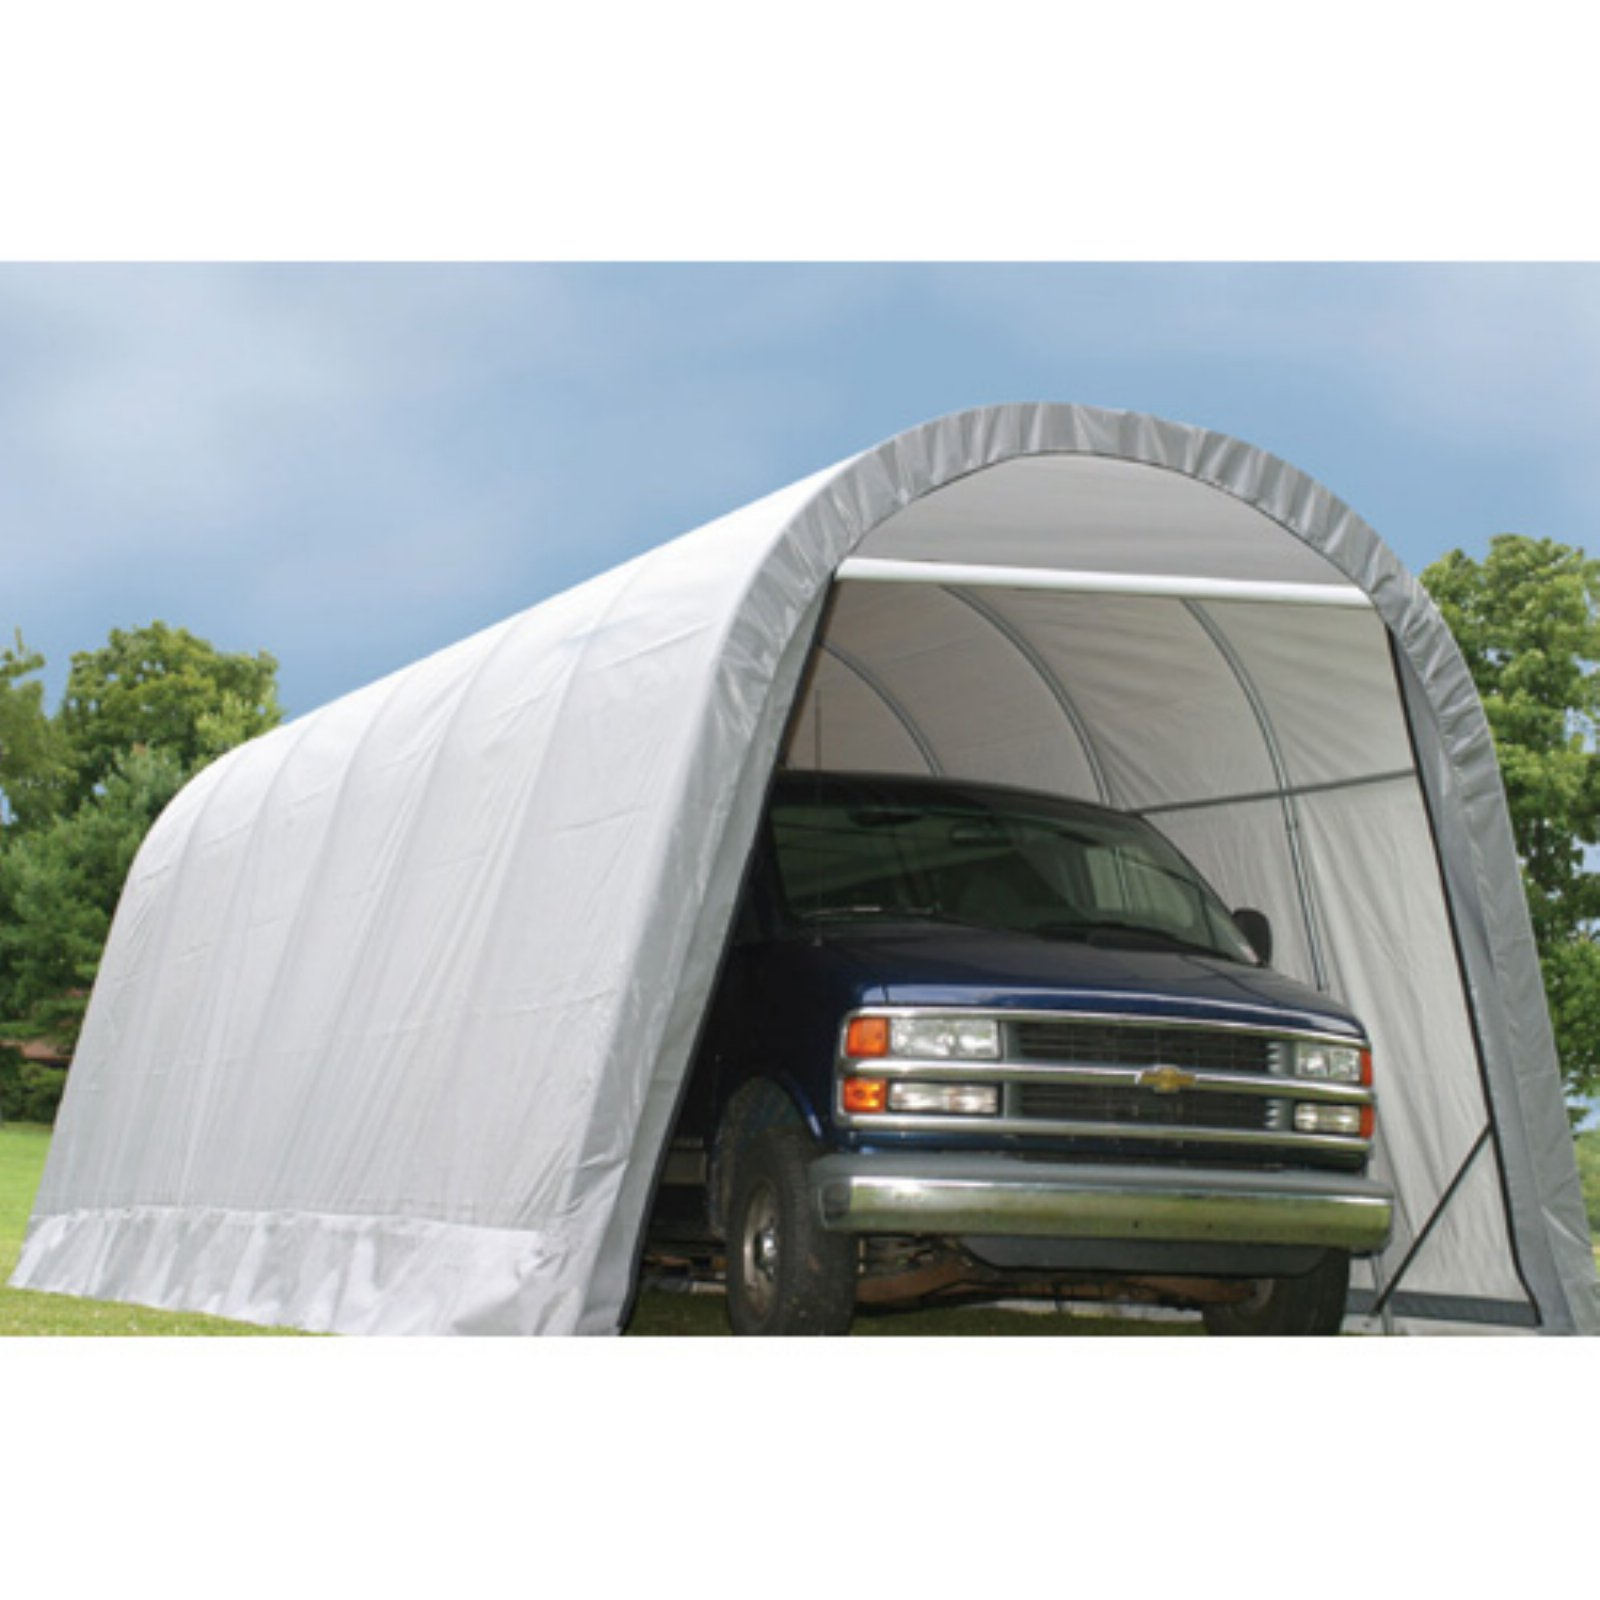 Shelterlogic 13' x 28' x 10' Round Style Car Shelter